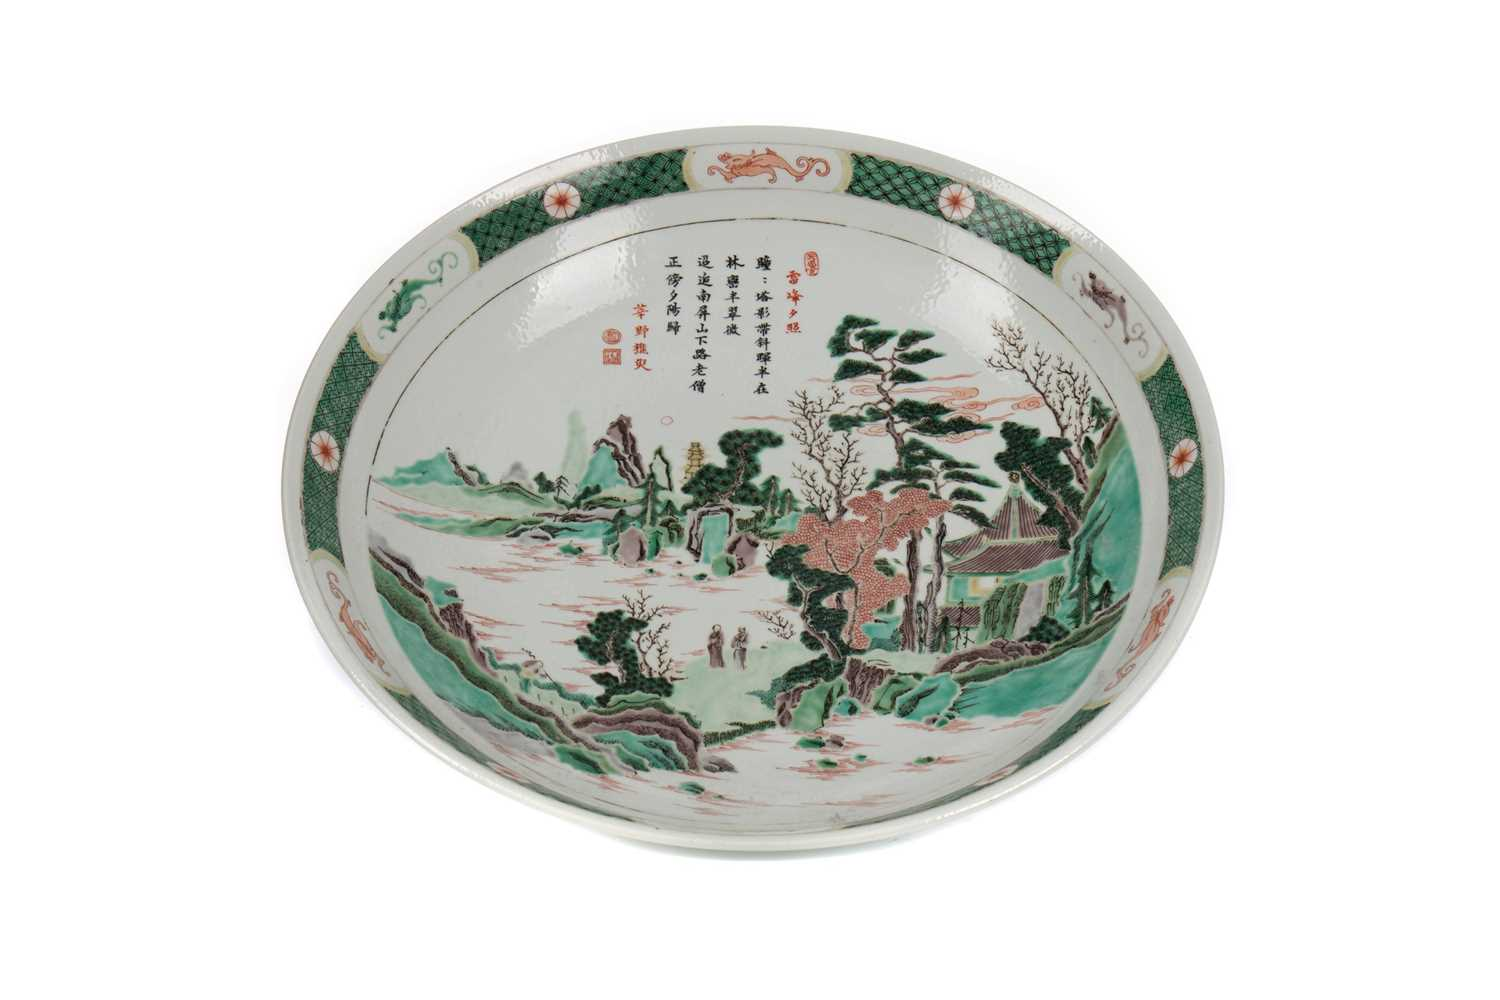 Lot 1651 - A 19TH CENTURY CHINESE FAMILLE VERTE SHALLOW BOWL